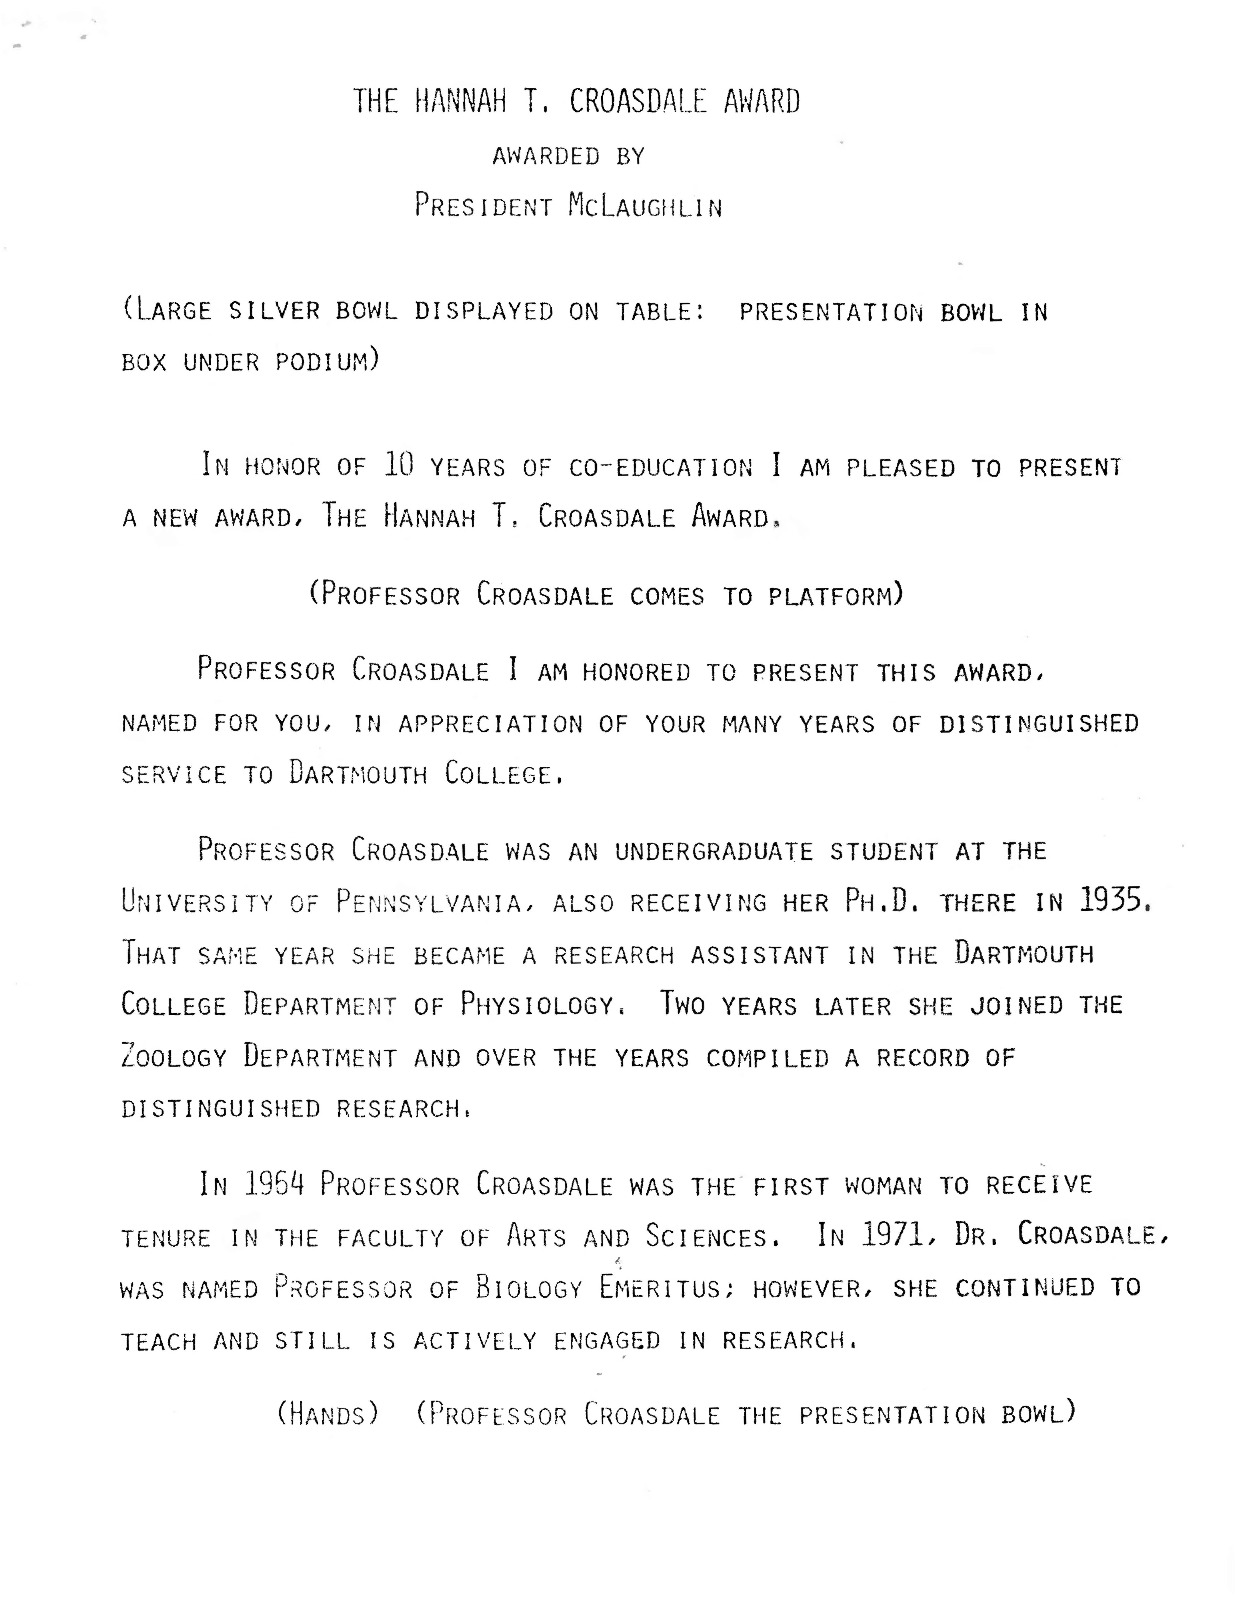 A transcript of the first Hannah T. Croasdale Award ceremony in 1983. President McLaughlin announces the award is being offered in honor of the 10-year anniversary of co-education and is to be granted to the person who has made the most significant contribution to the quality of life for women at Dartmouth College. The first award was given to Maureen Bunce. Low quality photos of President McLaughlin, Prof. Croasdale, and Bunce are attached to the transcript.